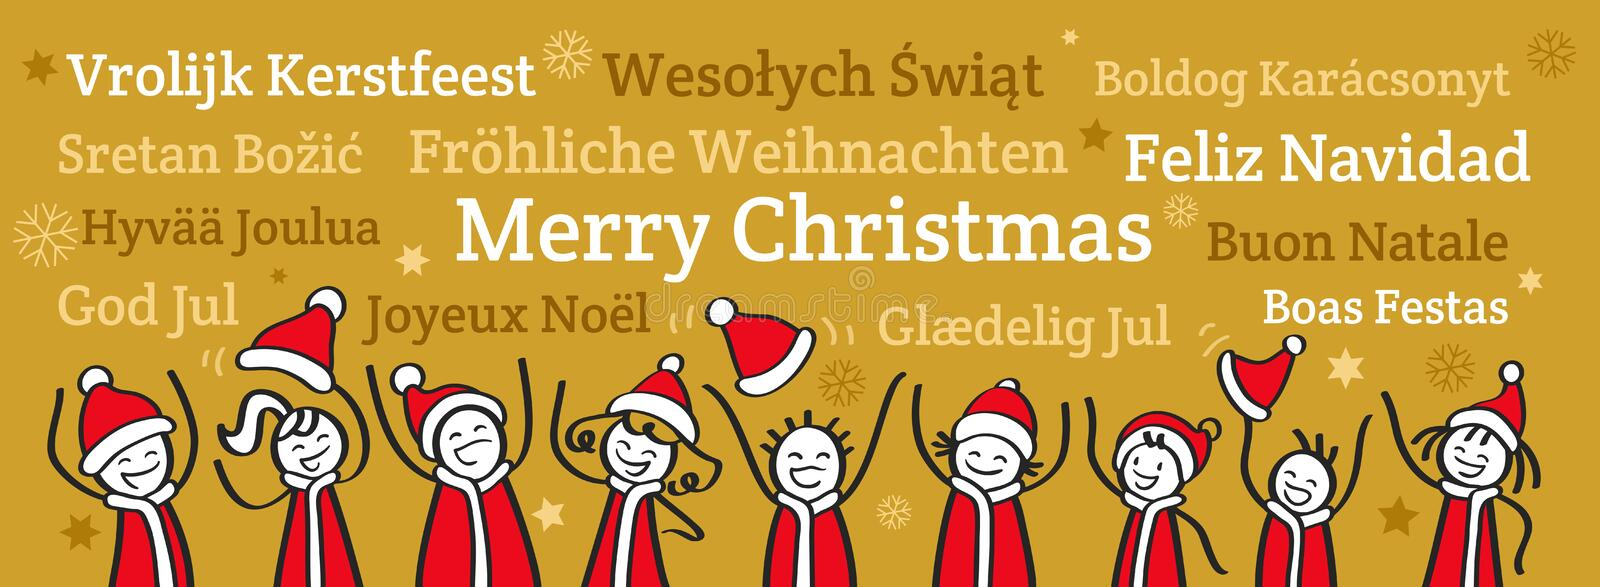 Row of cheering stick people wearing Santa Claus costumes, Christmas banner, greetings in different languages stock illustration